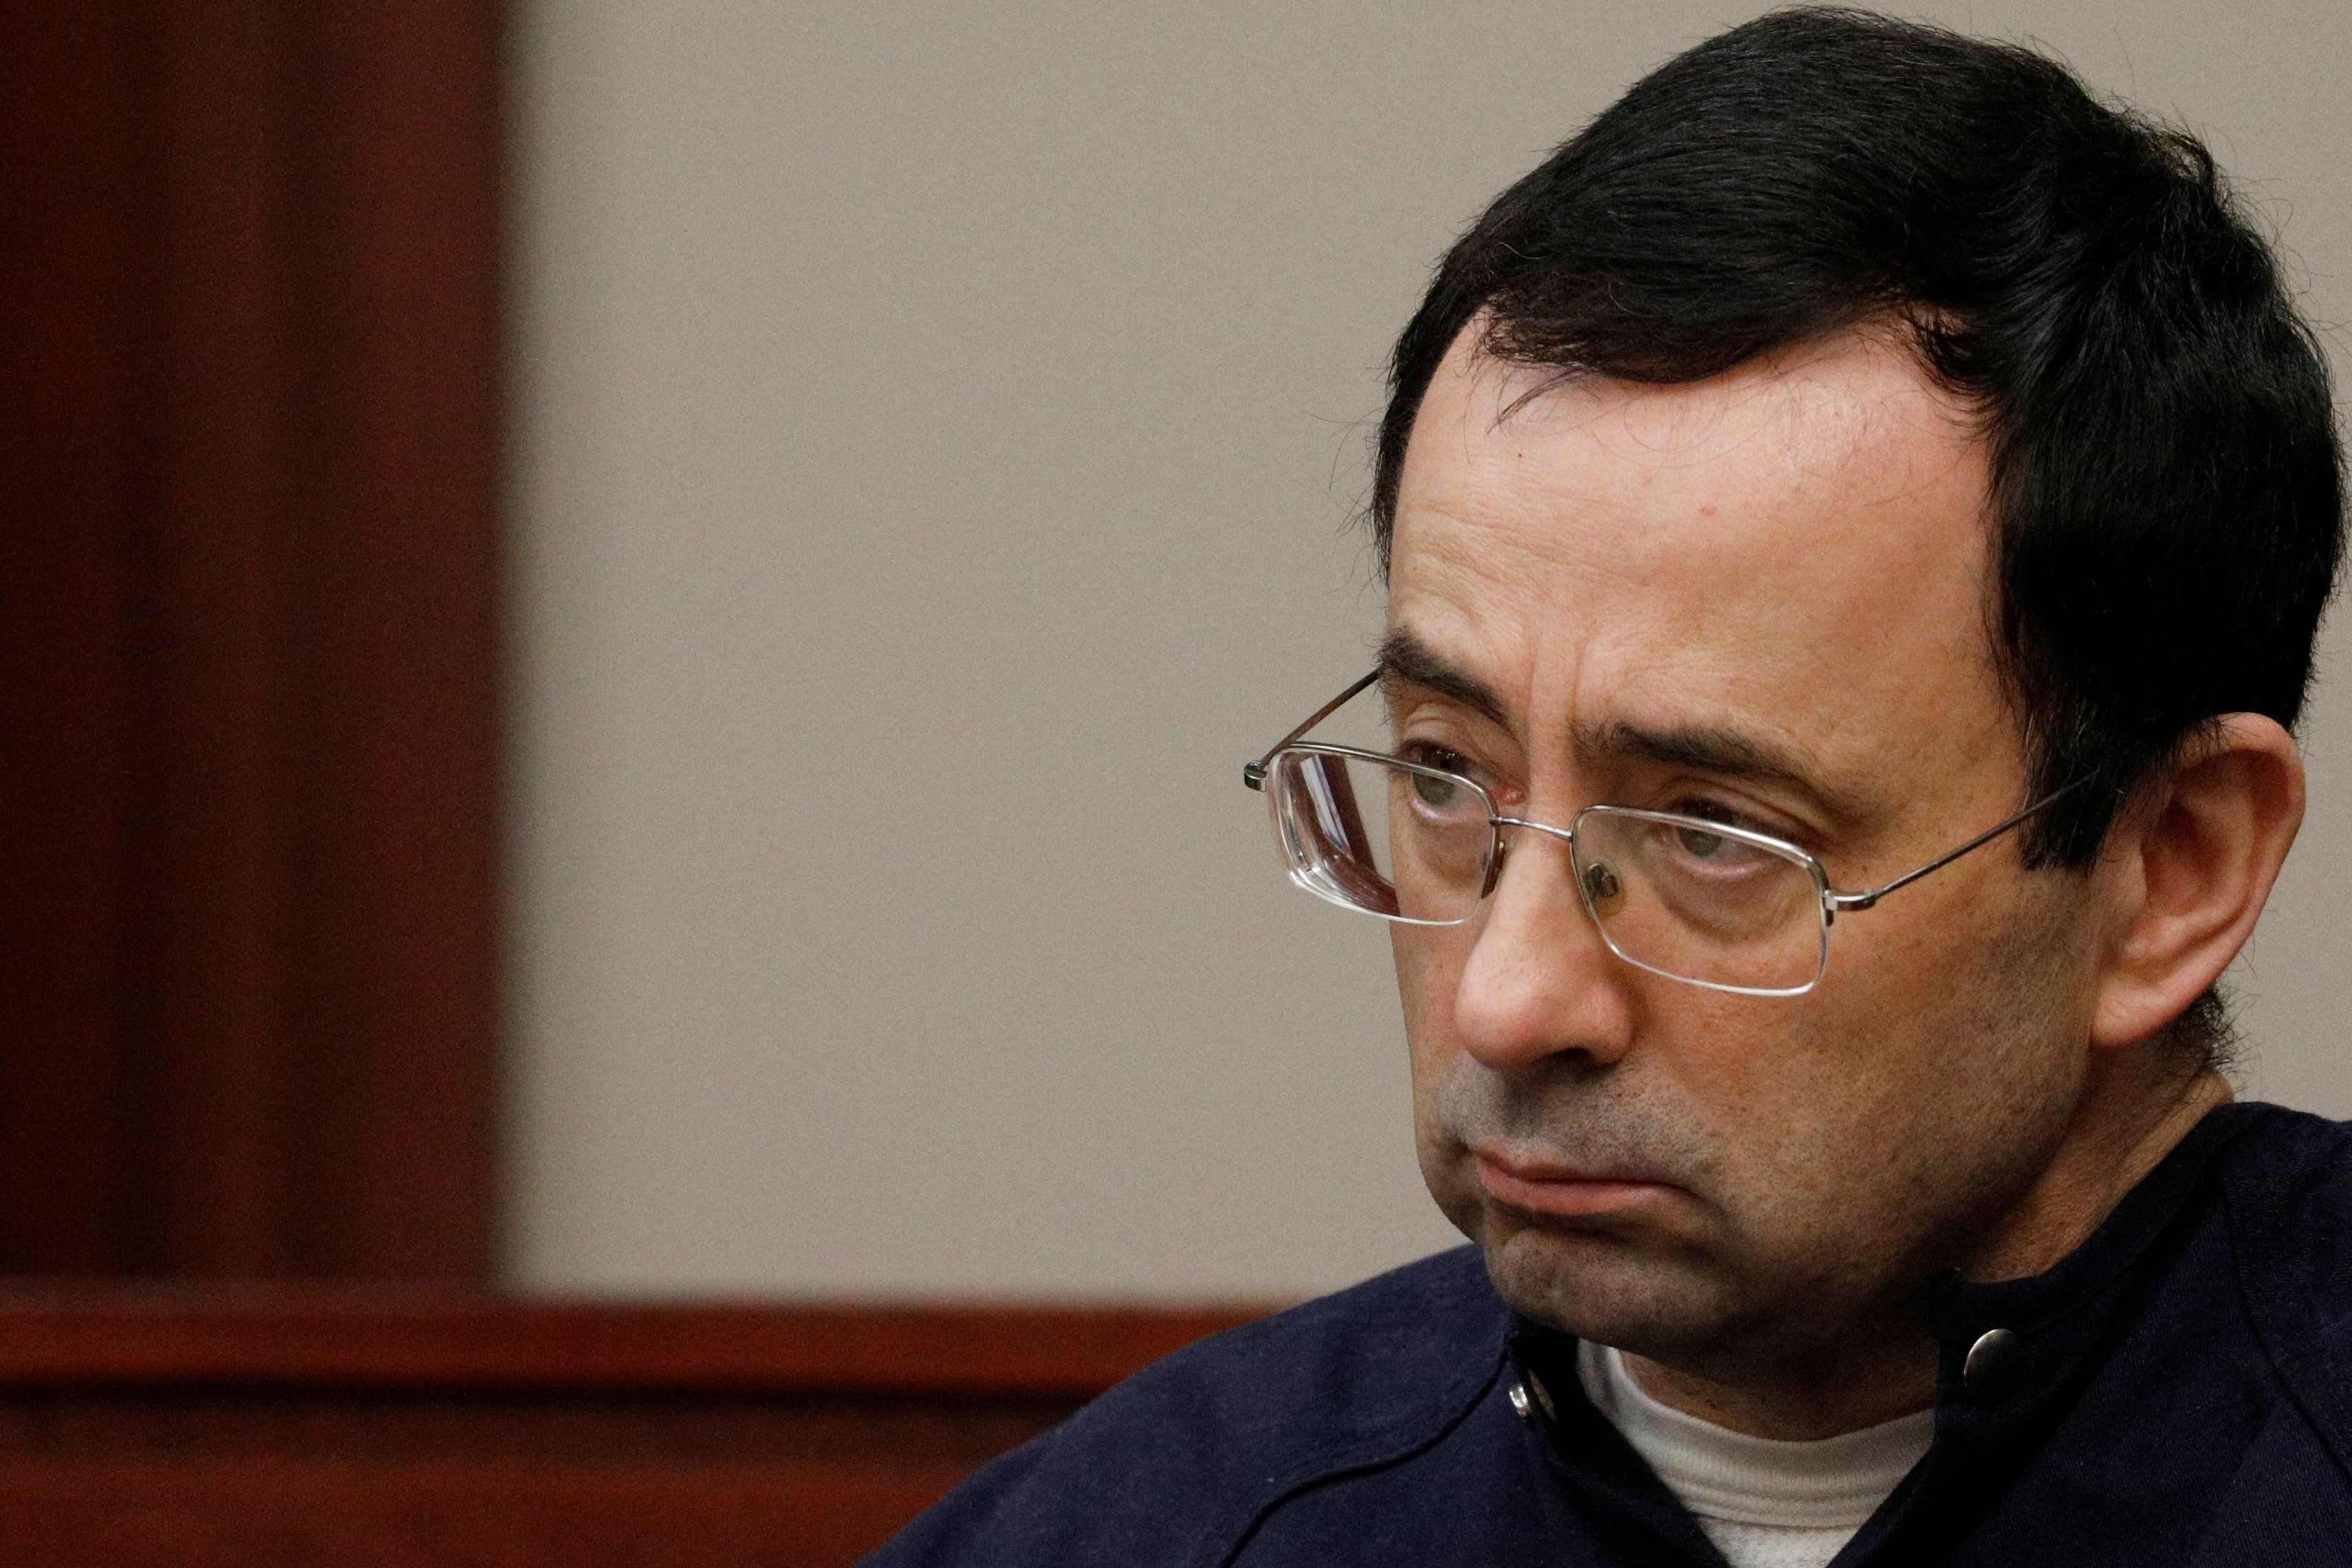 Larry Nassar, a former team USA Gymnastics doctor who pleaded guilty in November 2017 to sexual assault charges, sits in the courtroom during his sentencing hearing in Lansing, Michigan, U.S., January 22, 2018. REUTERS/Brendan McDermid